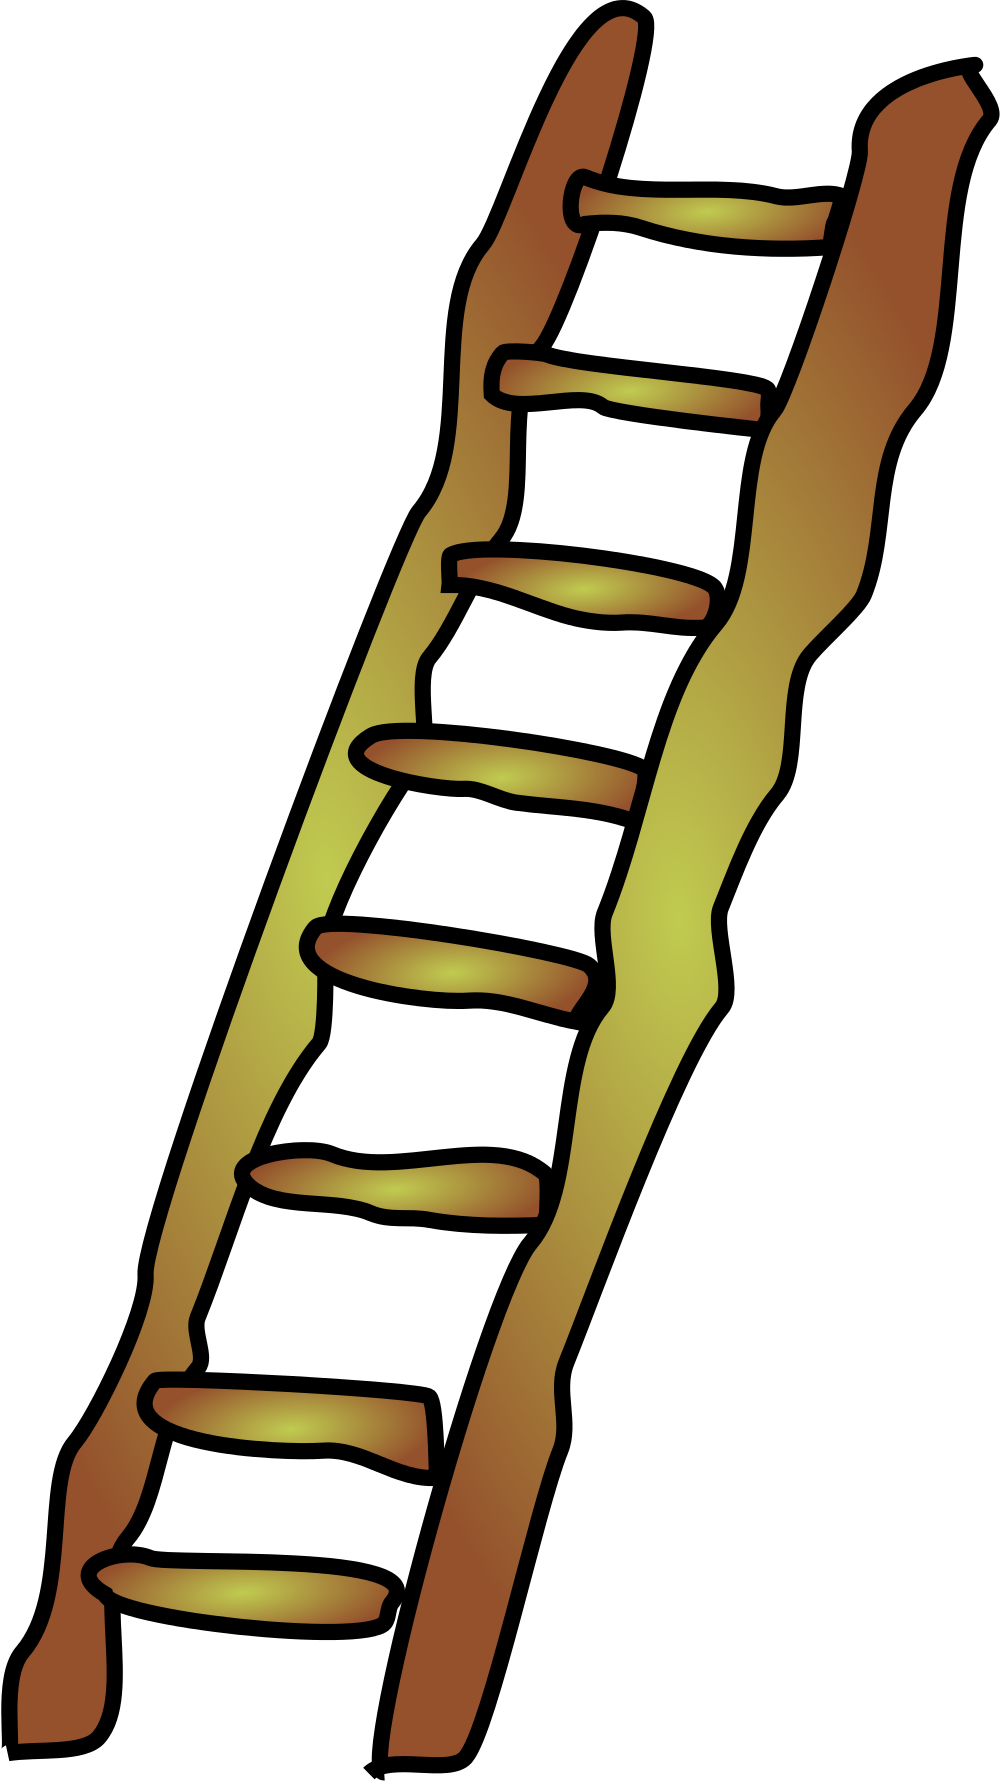 clip transparent stock Ladder clipart png. File svg wikimedia commons.